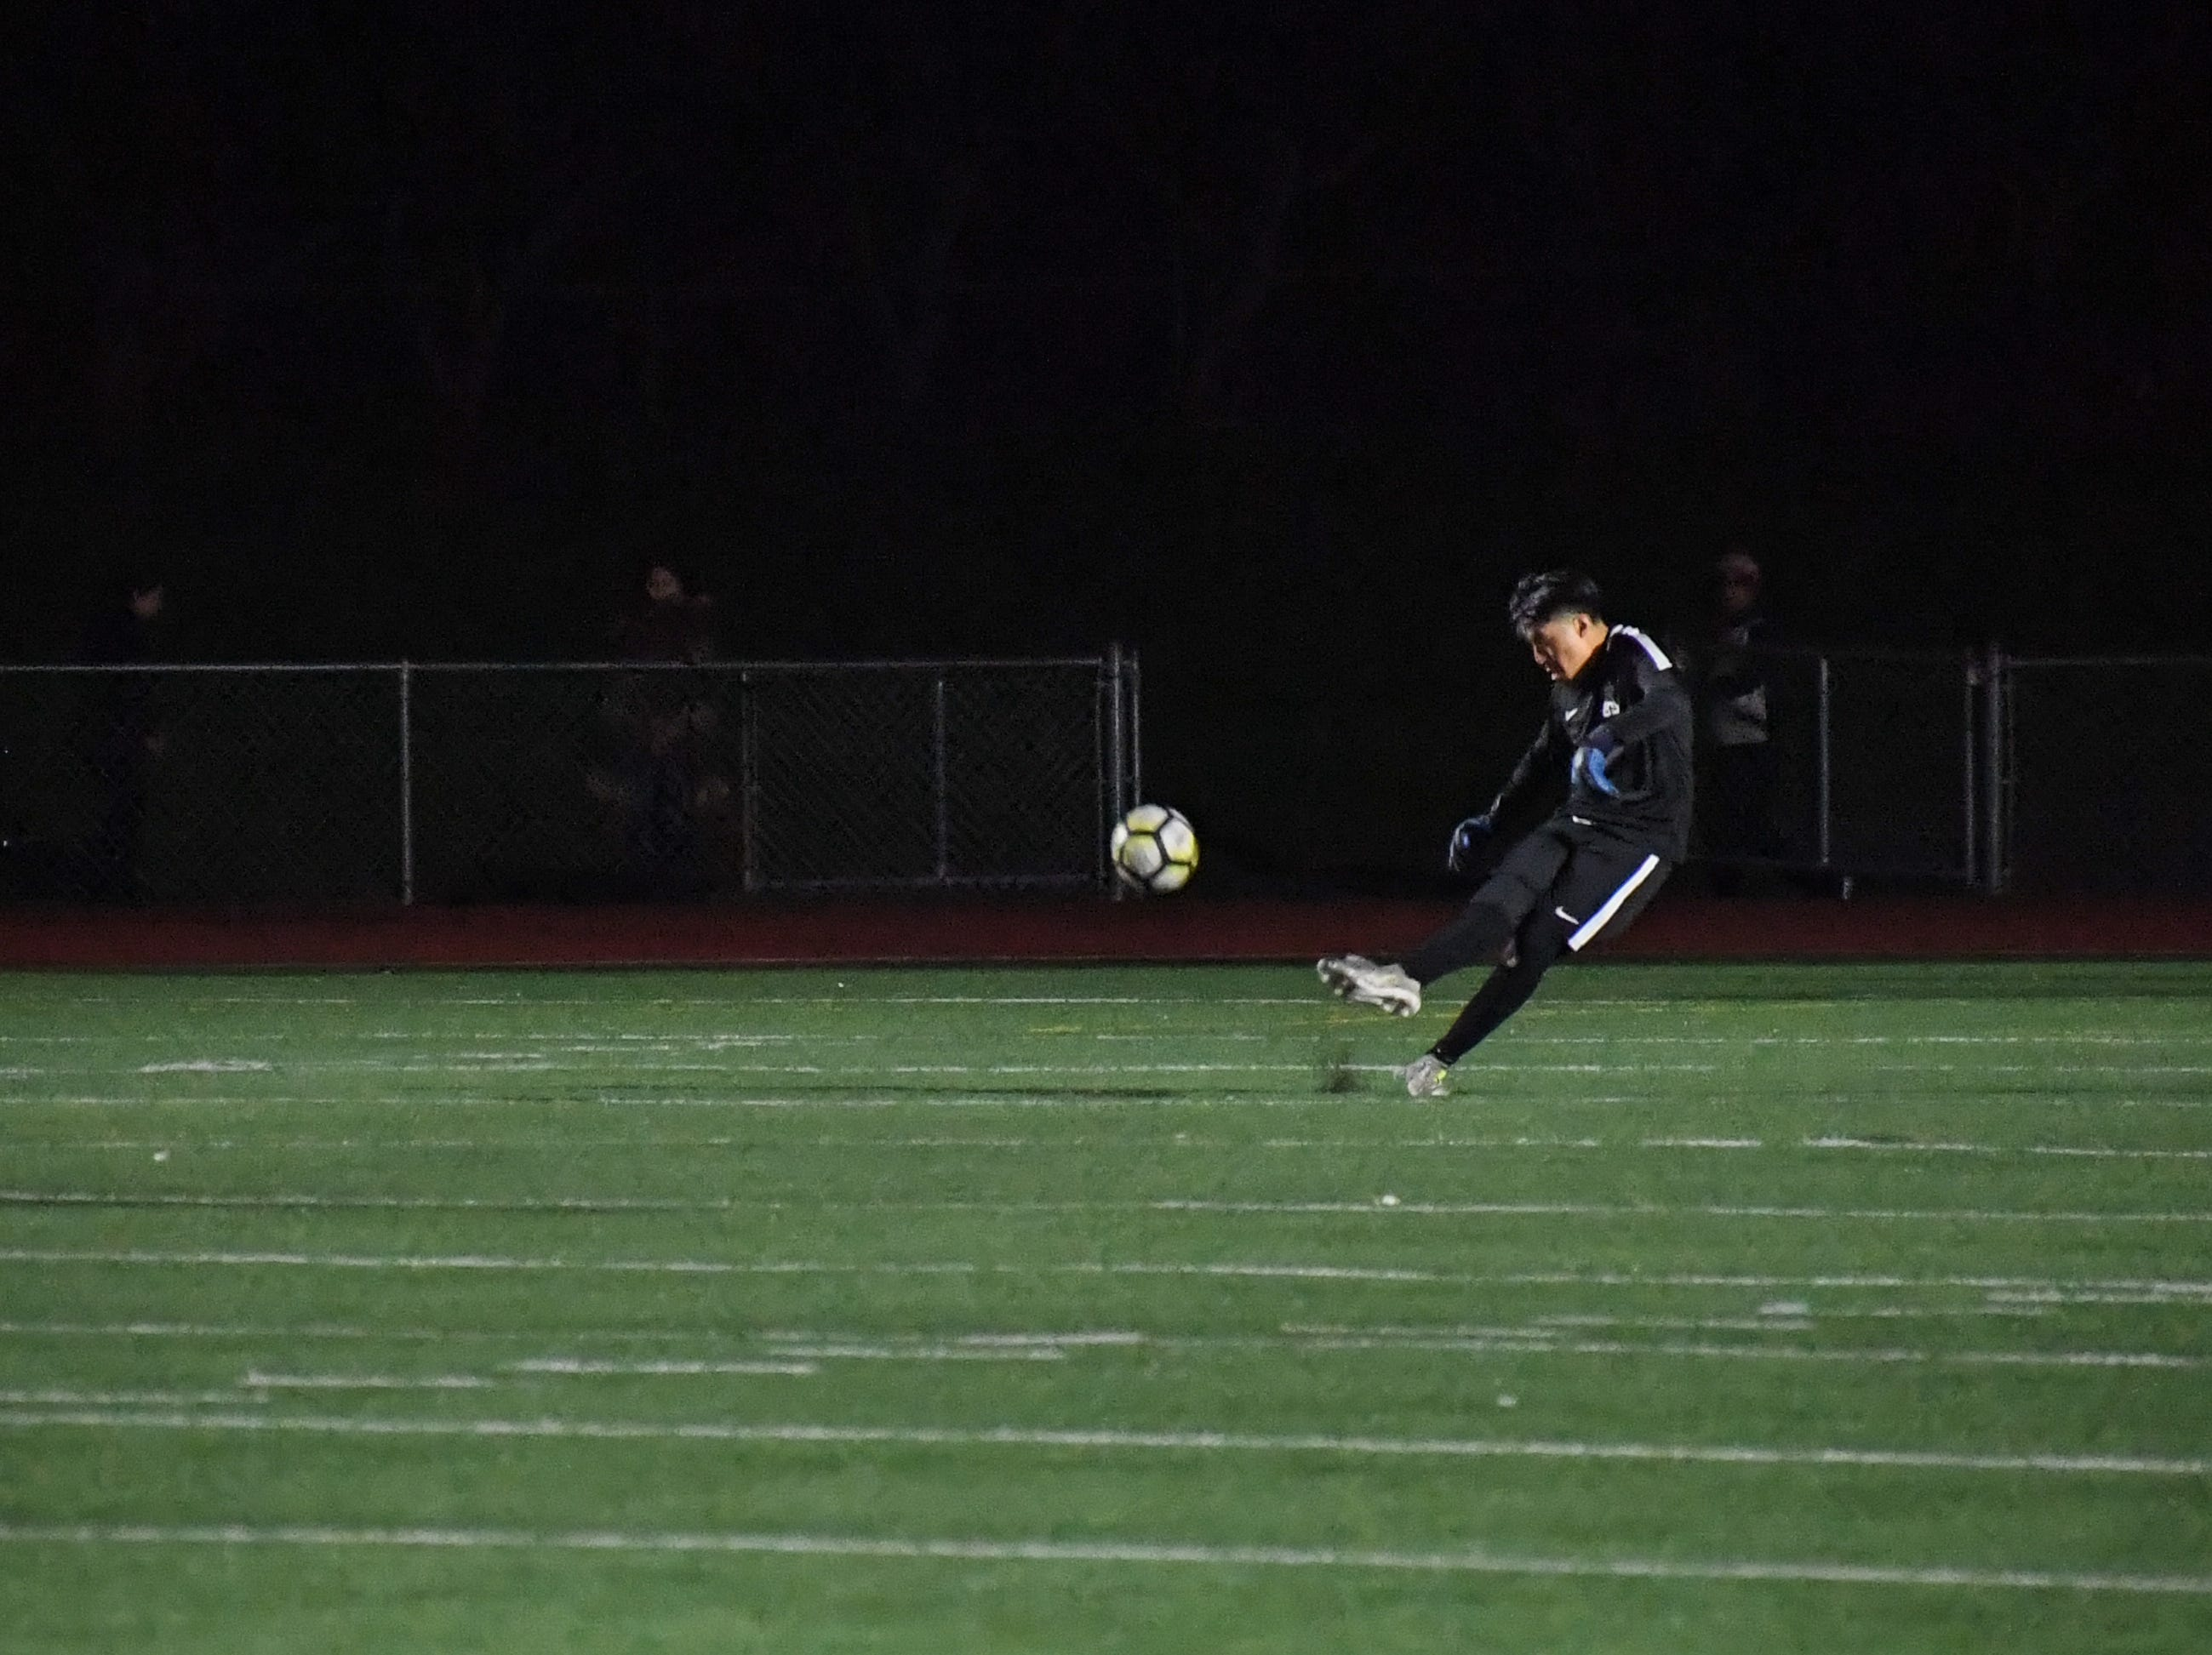 Alisal keeper Luis Canseco (1) powers the ball towards the attacking side.